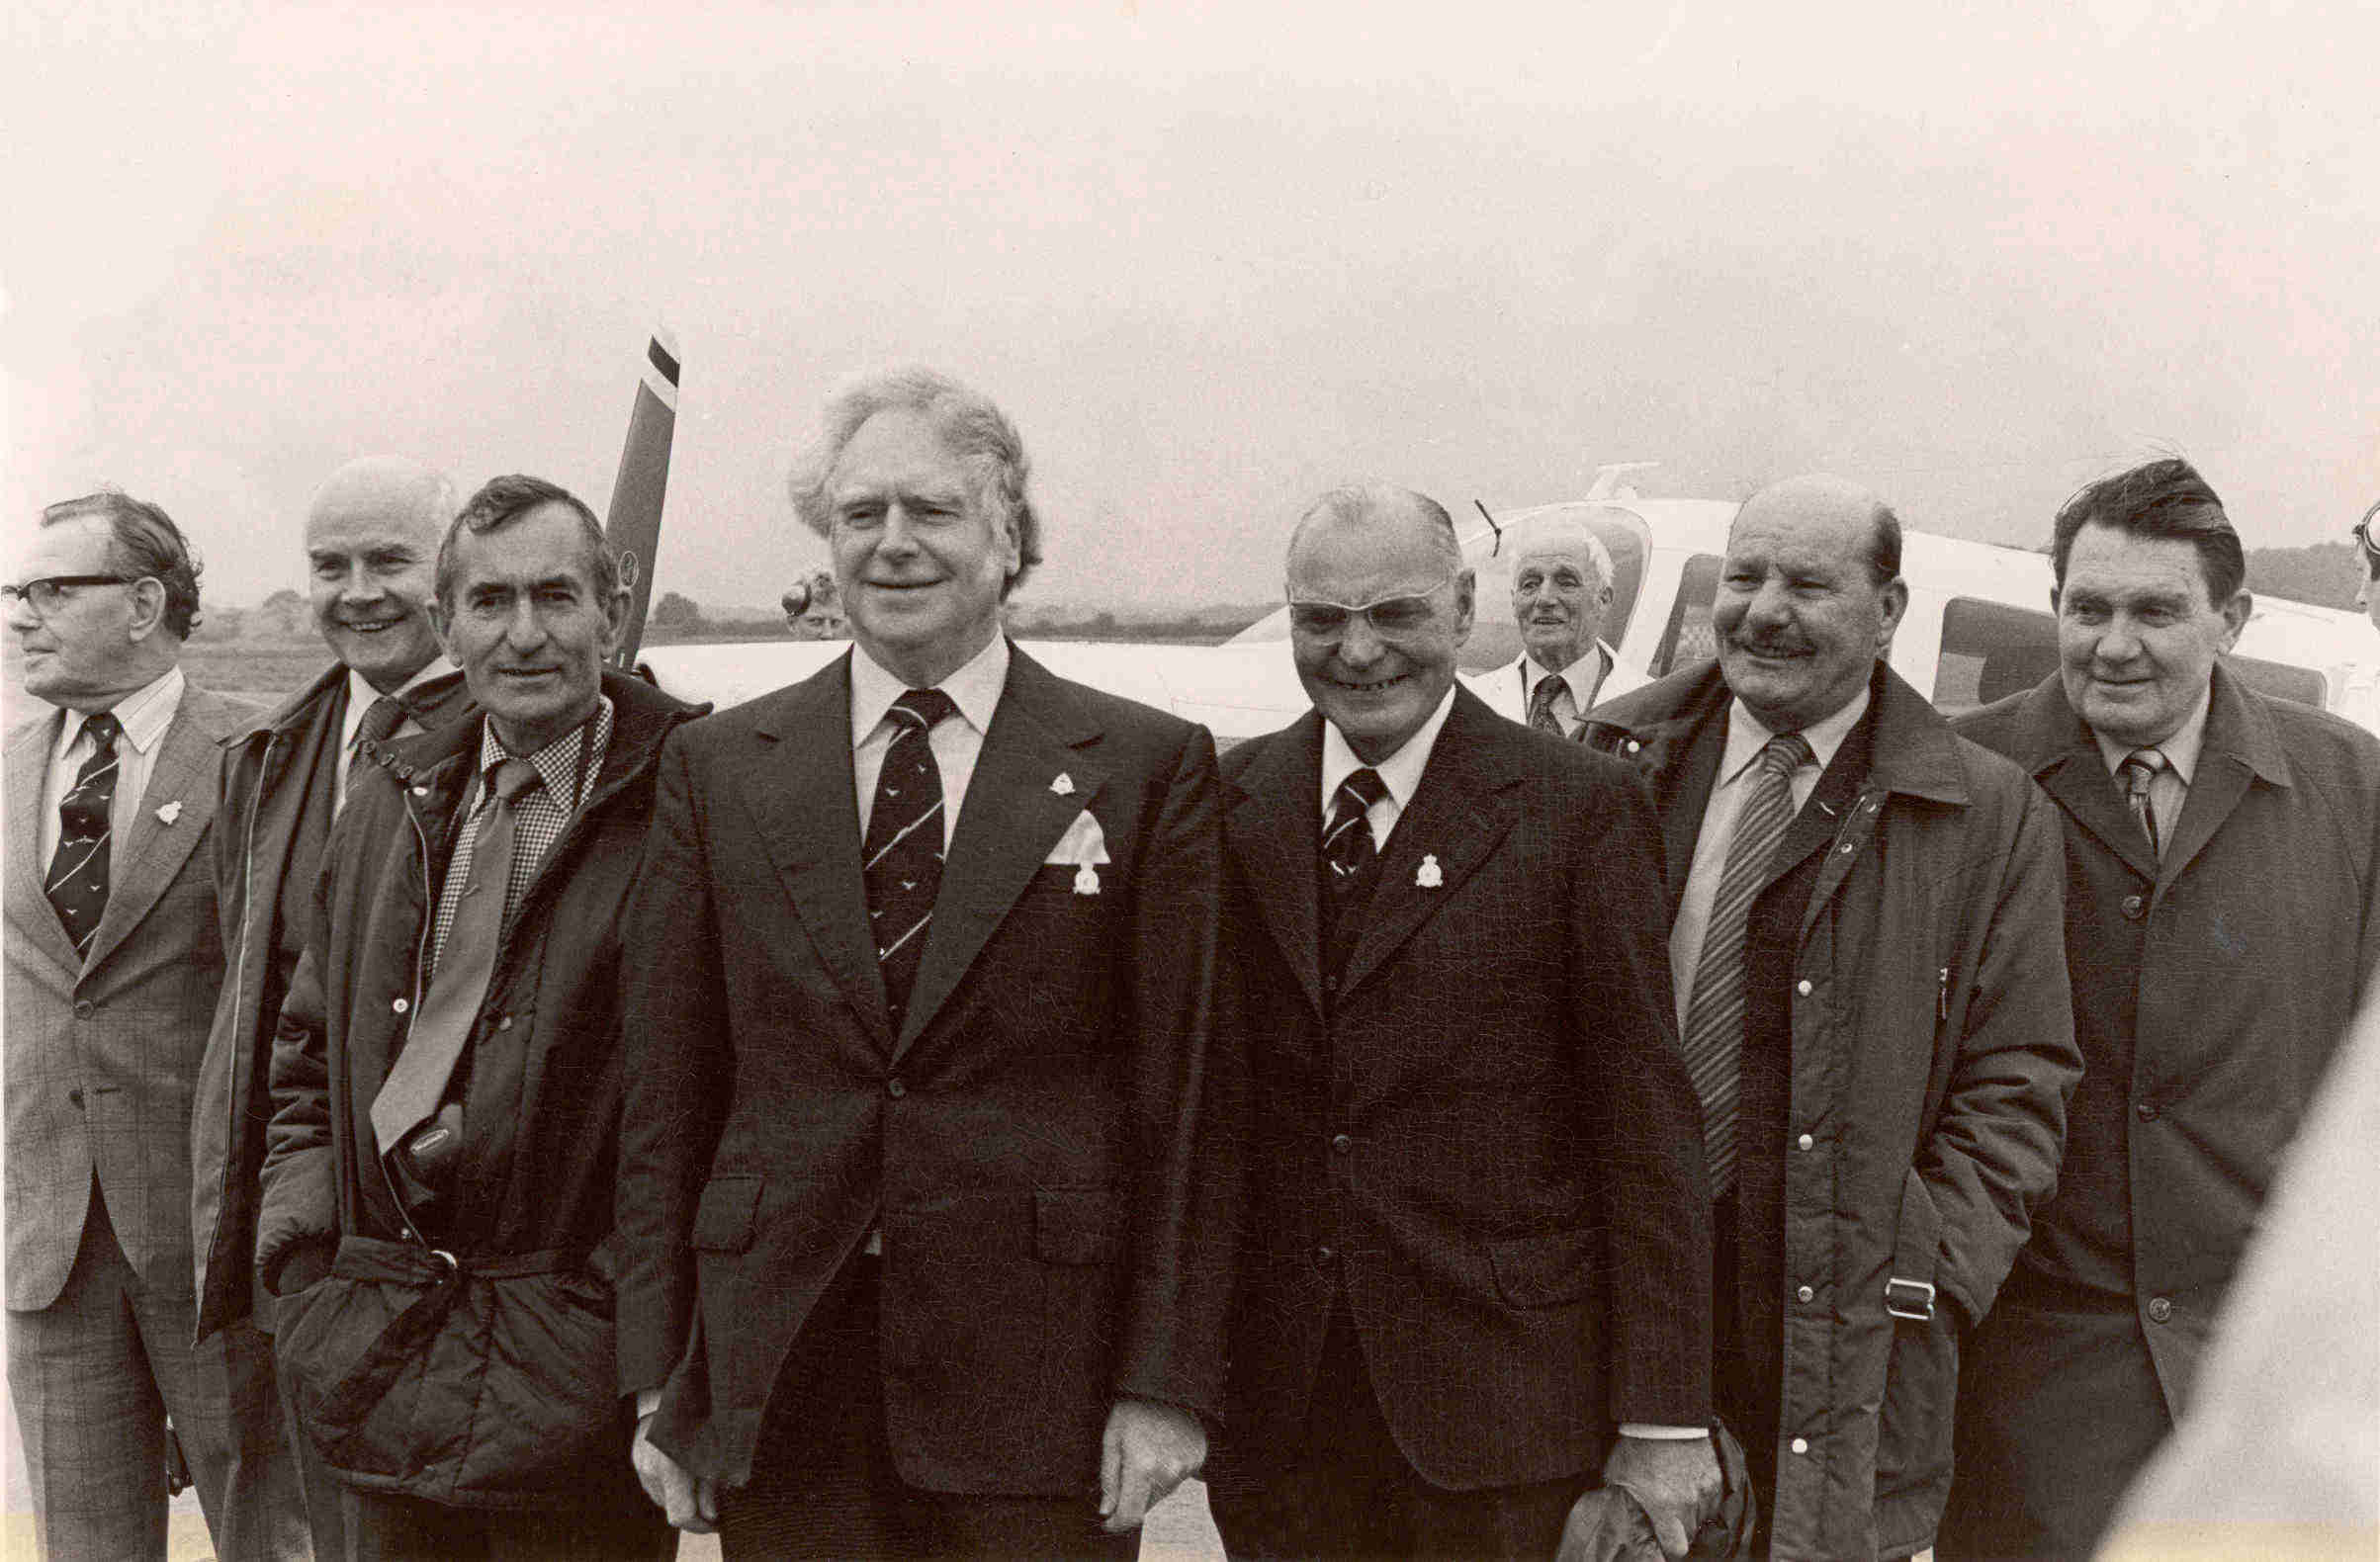 greaves-crew-reunion-raf-mod-uk